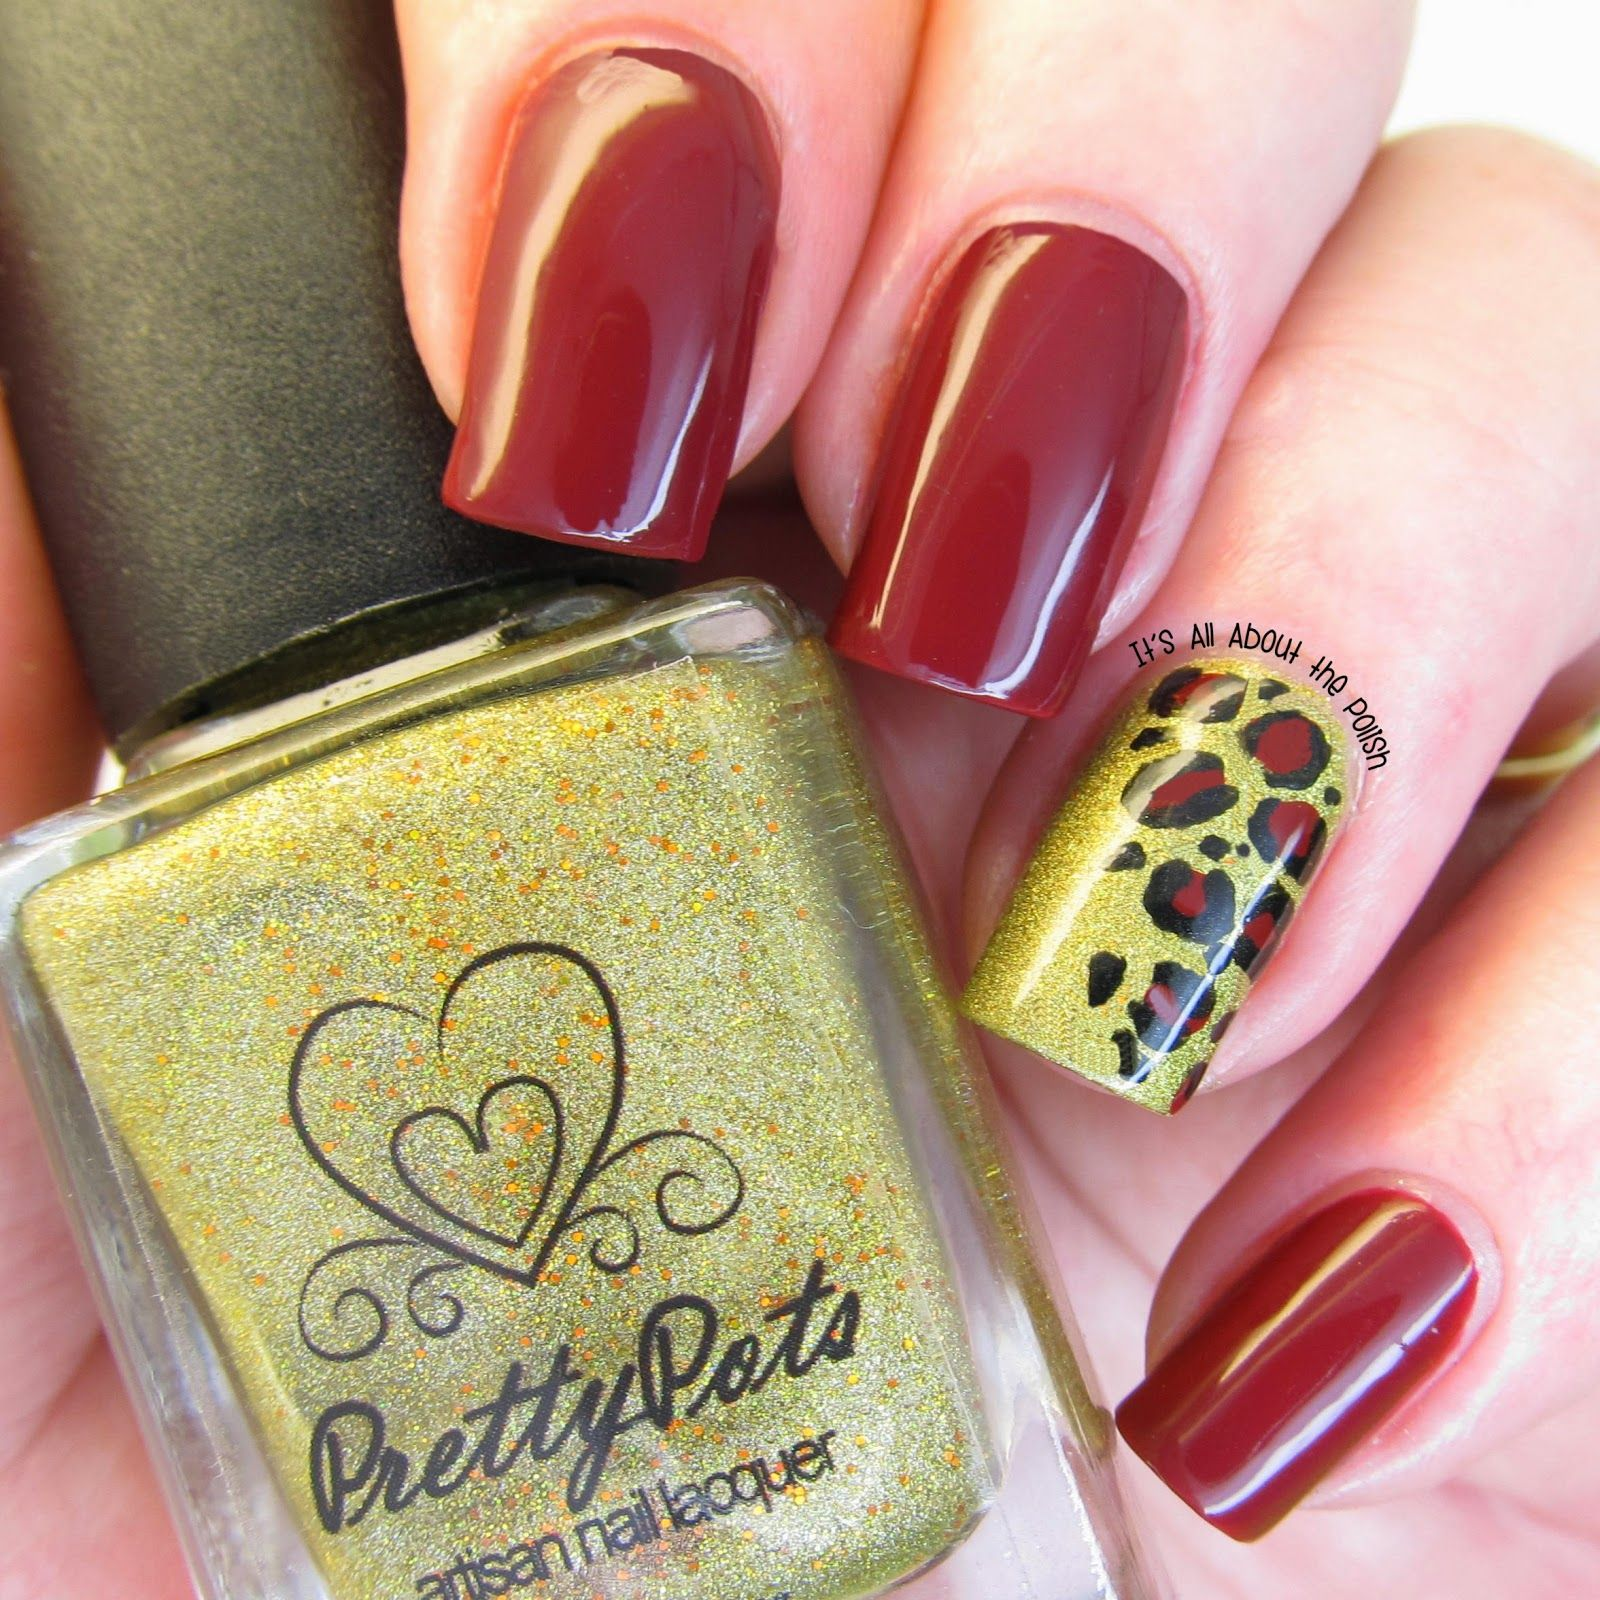 Itus all about the polish Leopard accent nail  Manicure Perfection